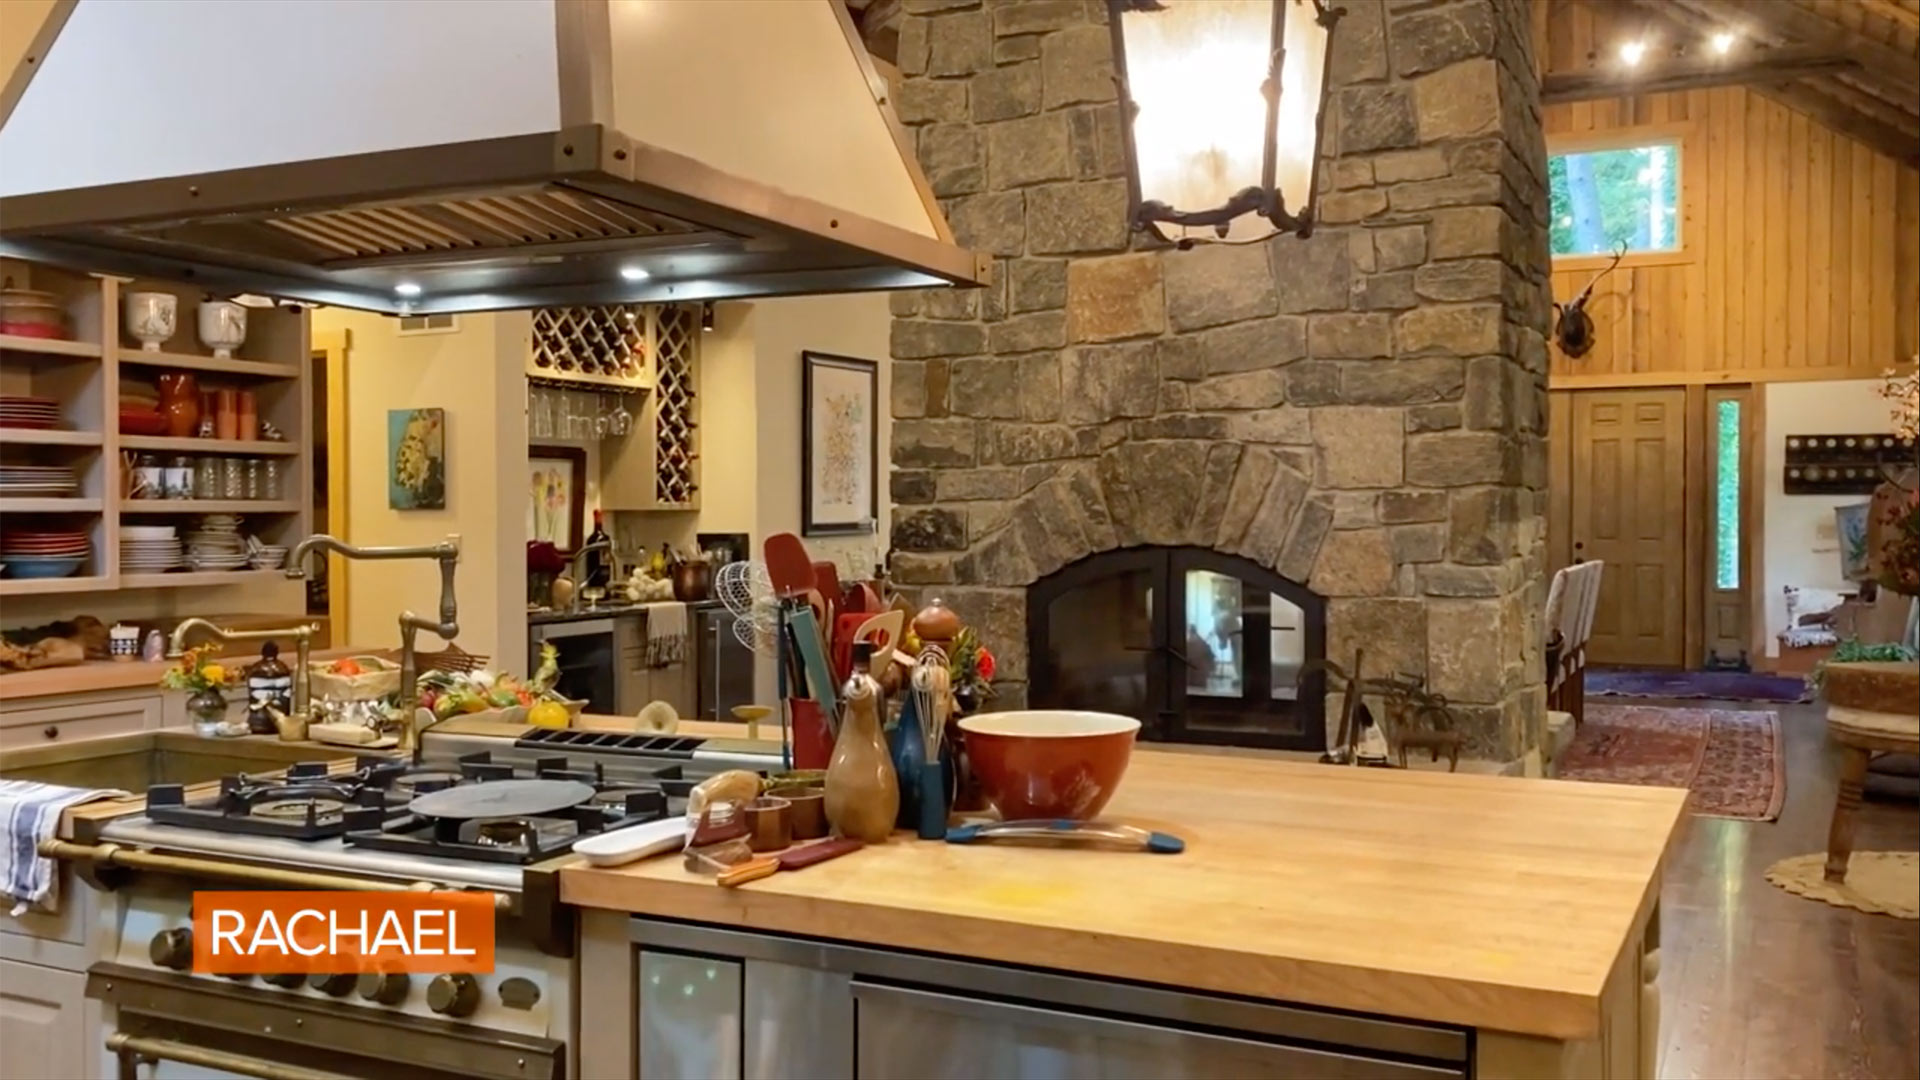 Rachael Ray Gives a Tour of Her Guest House After Her Fire ...